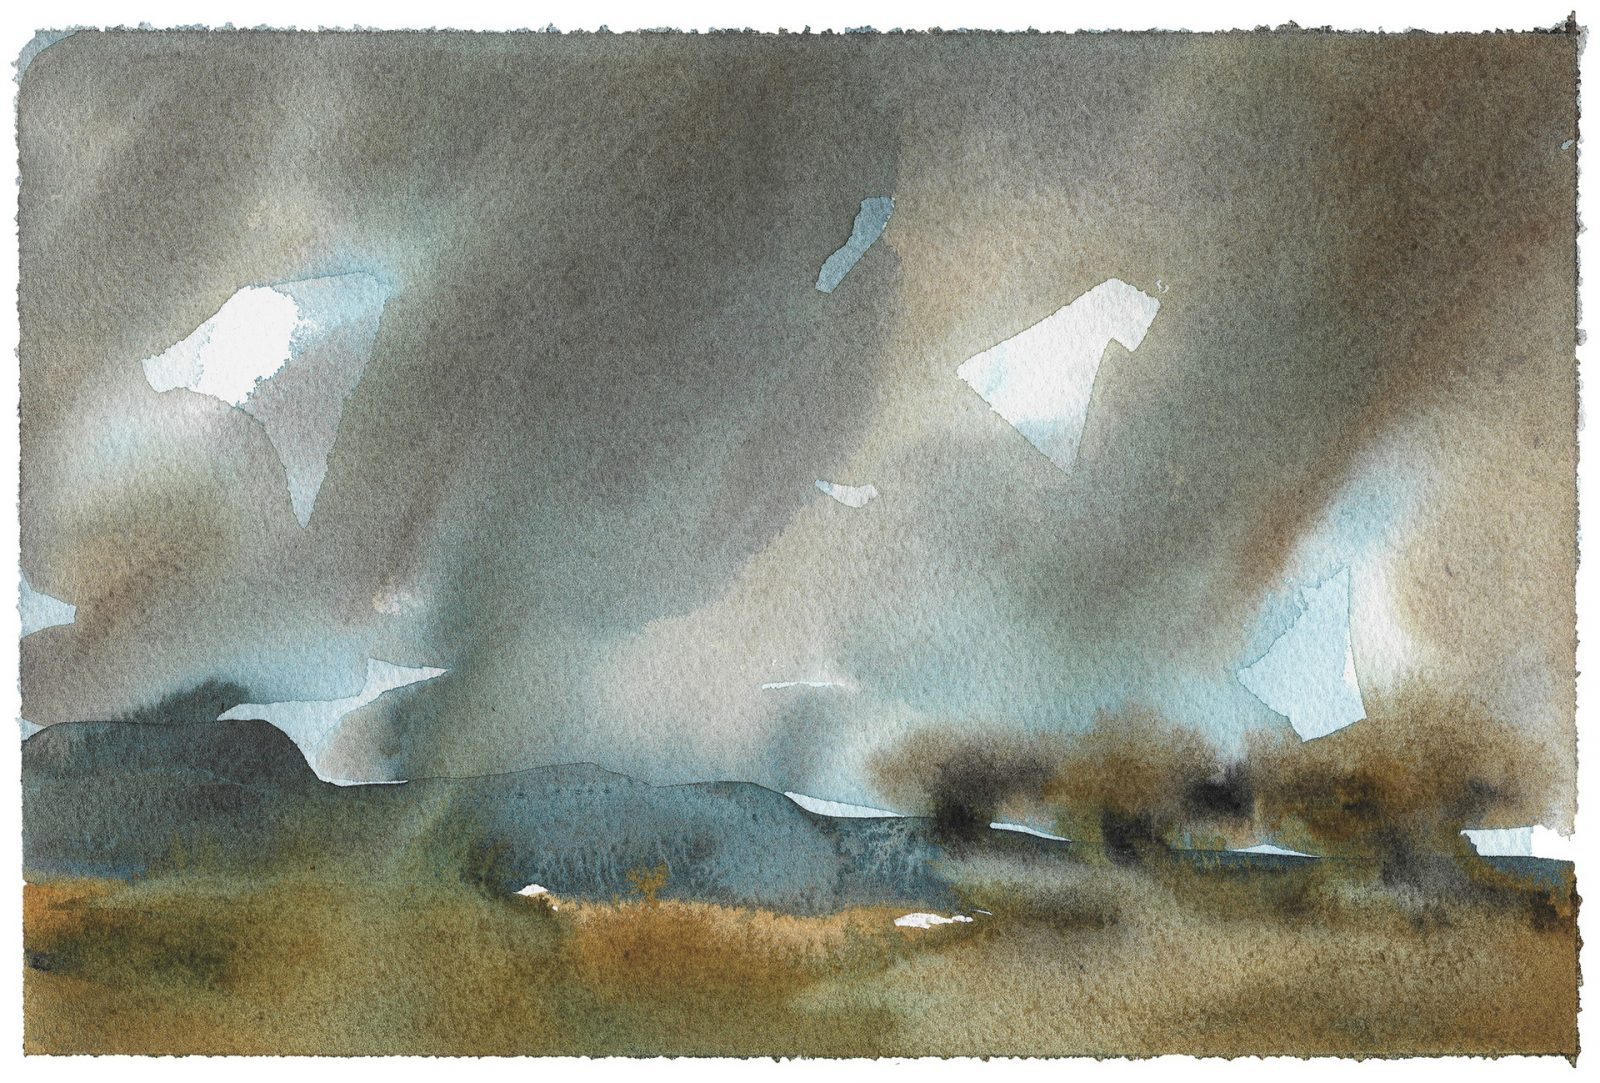 Abstract landscape art in watercolour in blue grey and ochre. Atmospheric sky